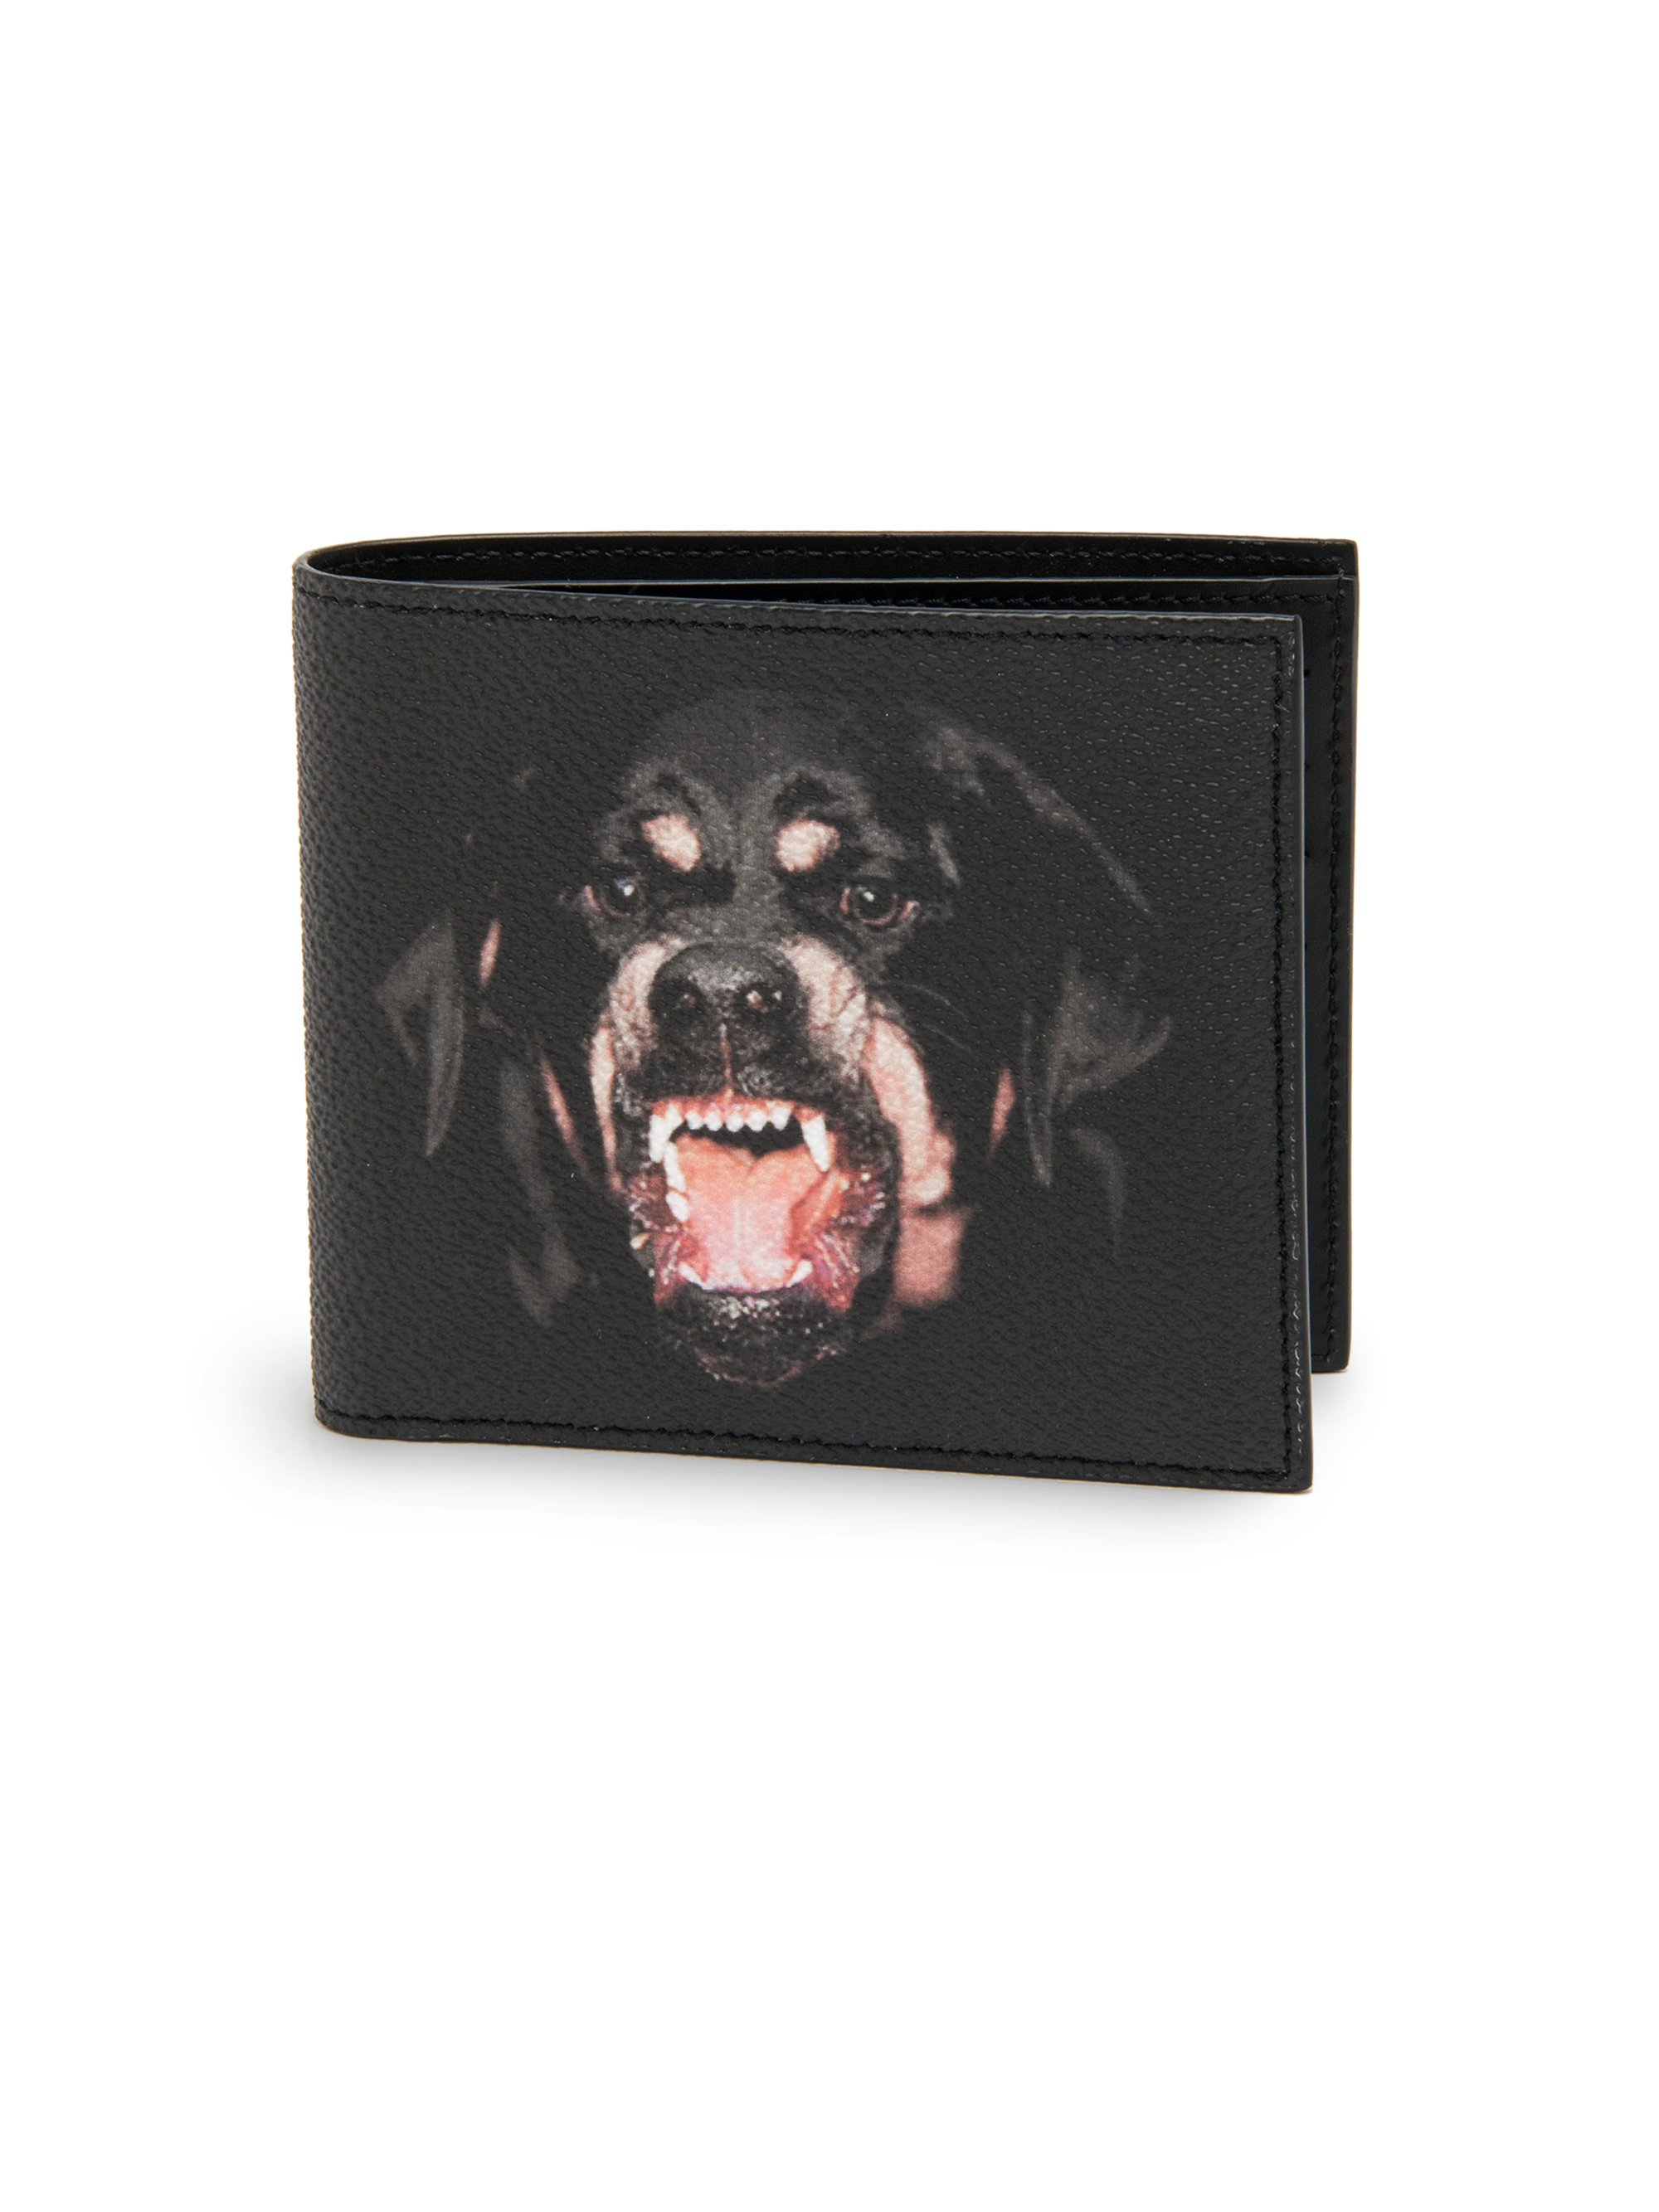 84bac73ab54 Lyst - Givenchy Rottweiler Leather Wallet in Black for Men